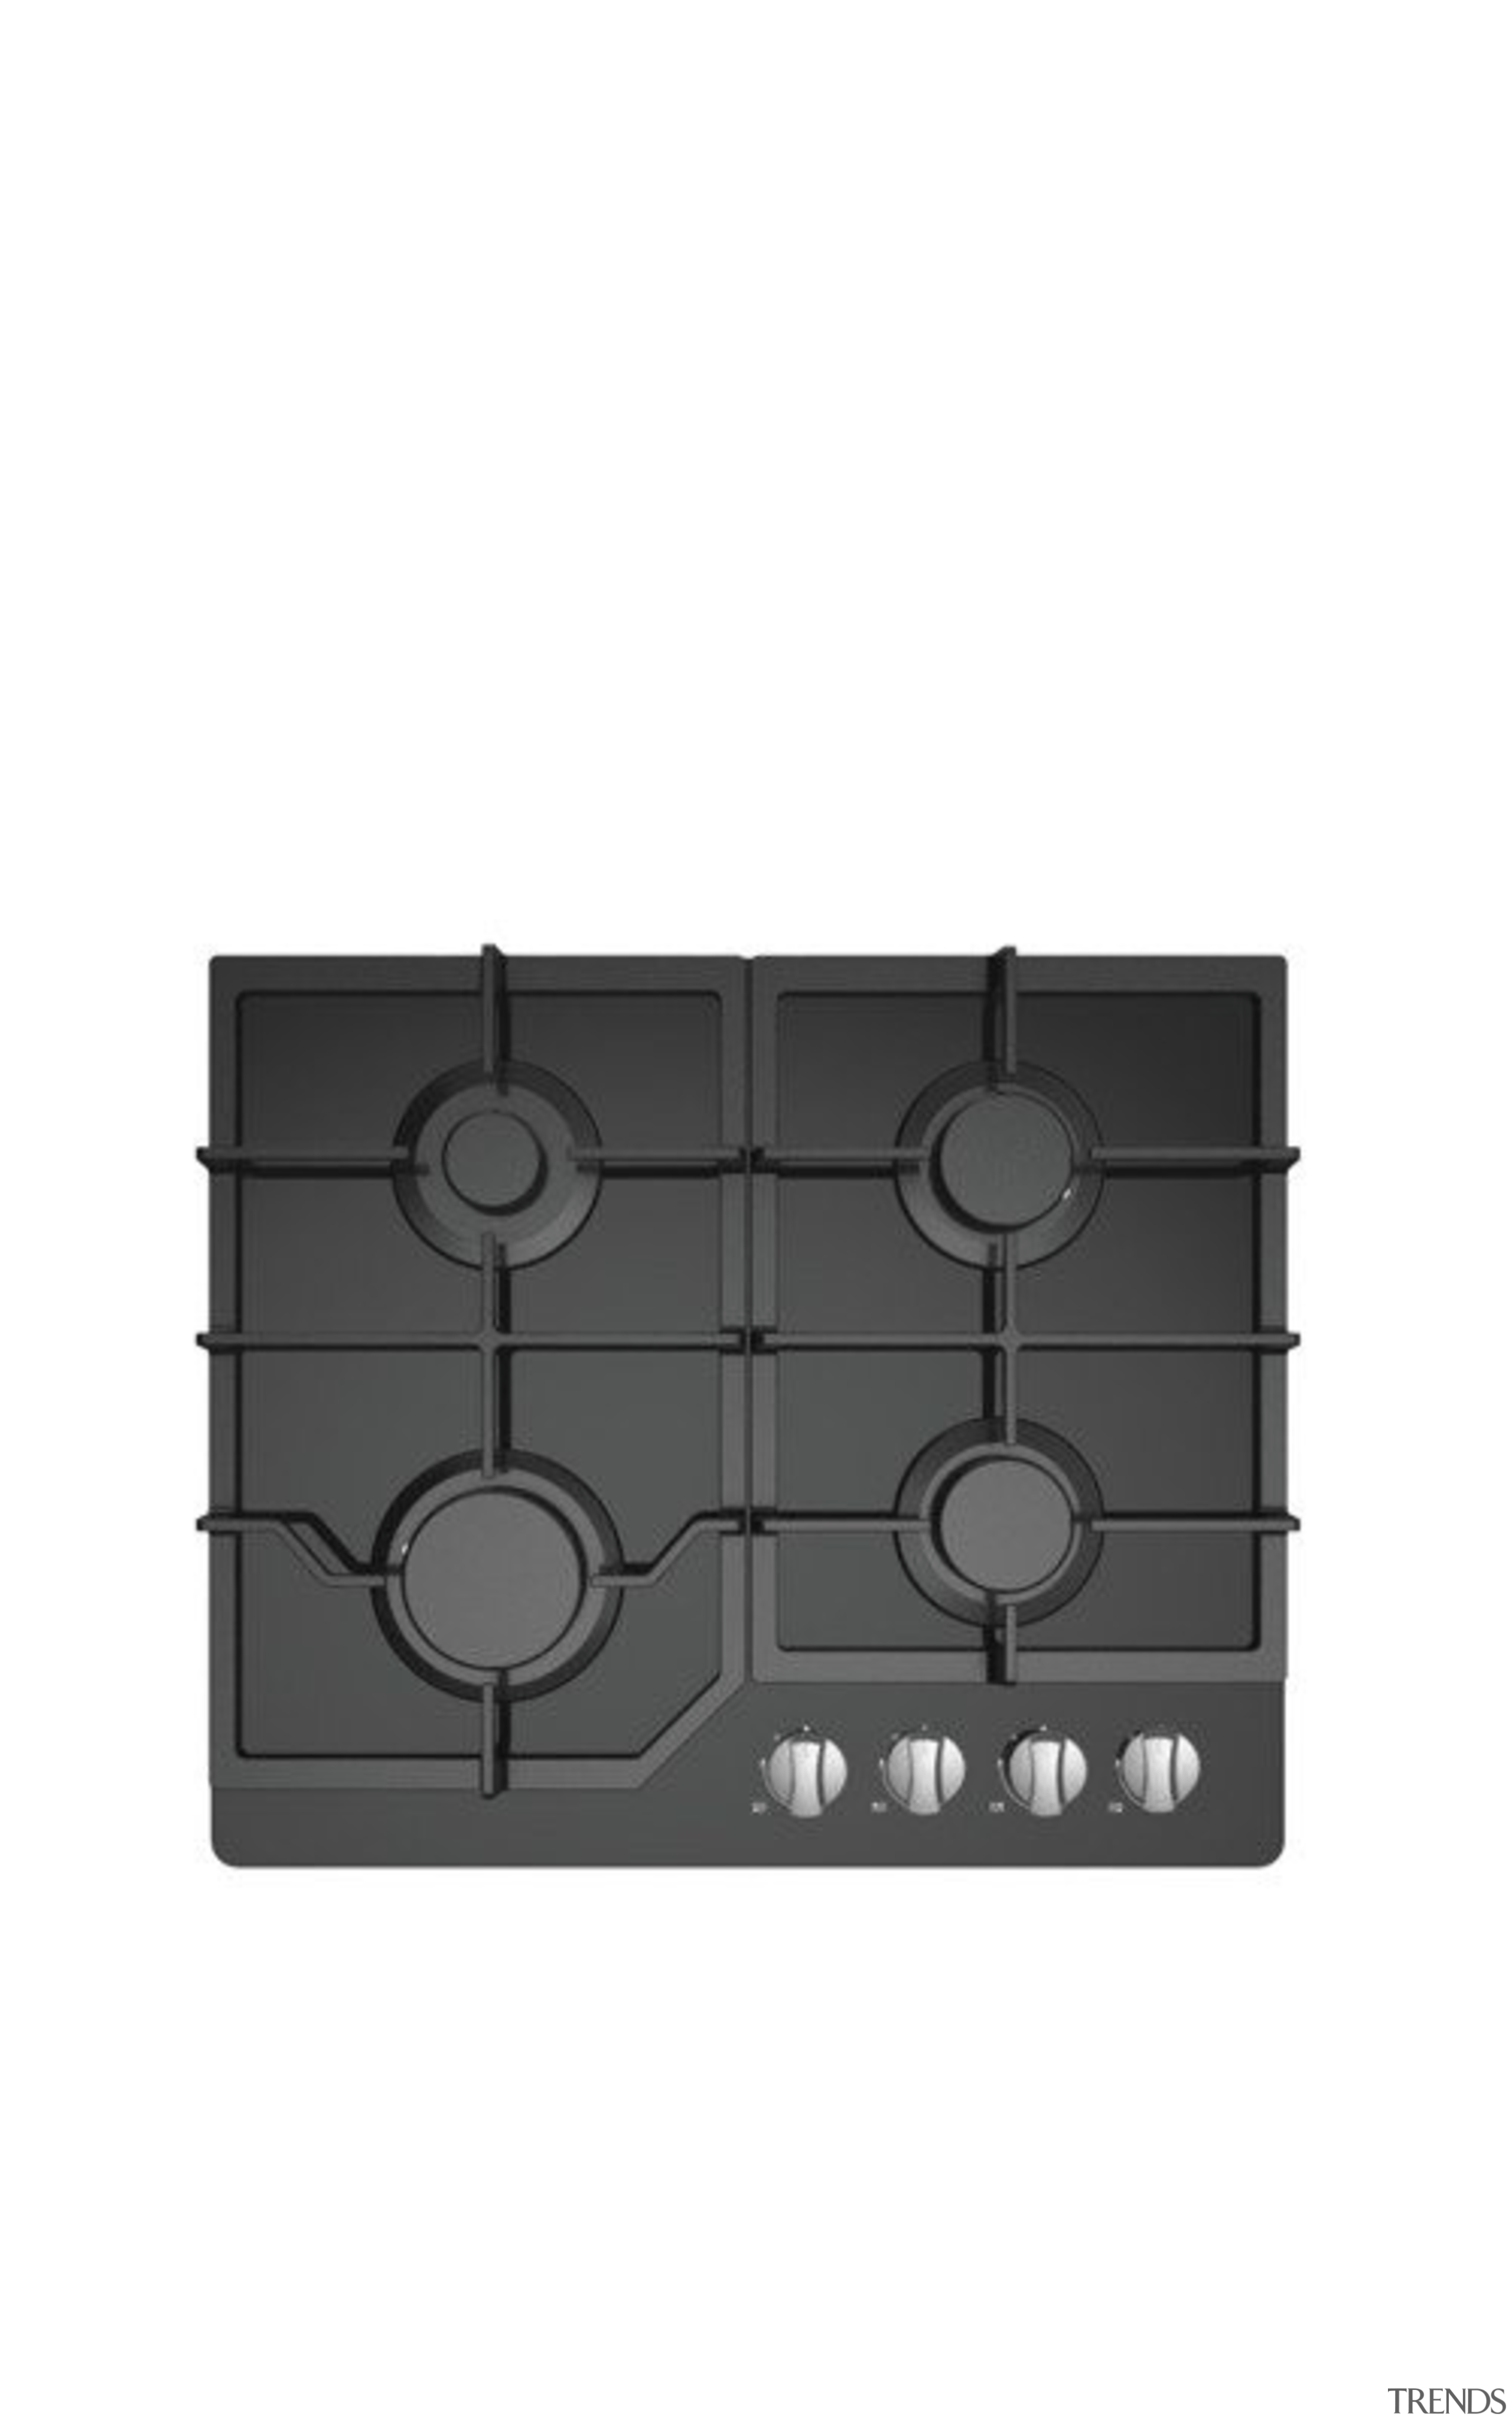 60cm Gas Cooktop4 Burners, Glass cooktop, Automatic ignition, cooktop, product, product design, white